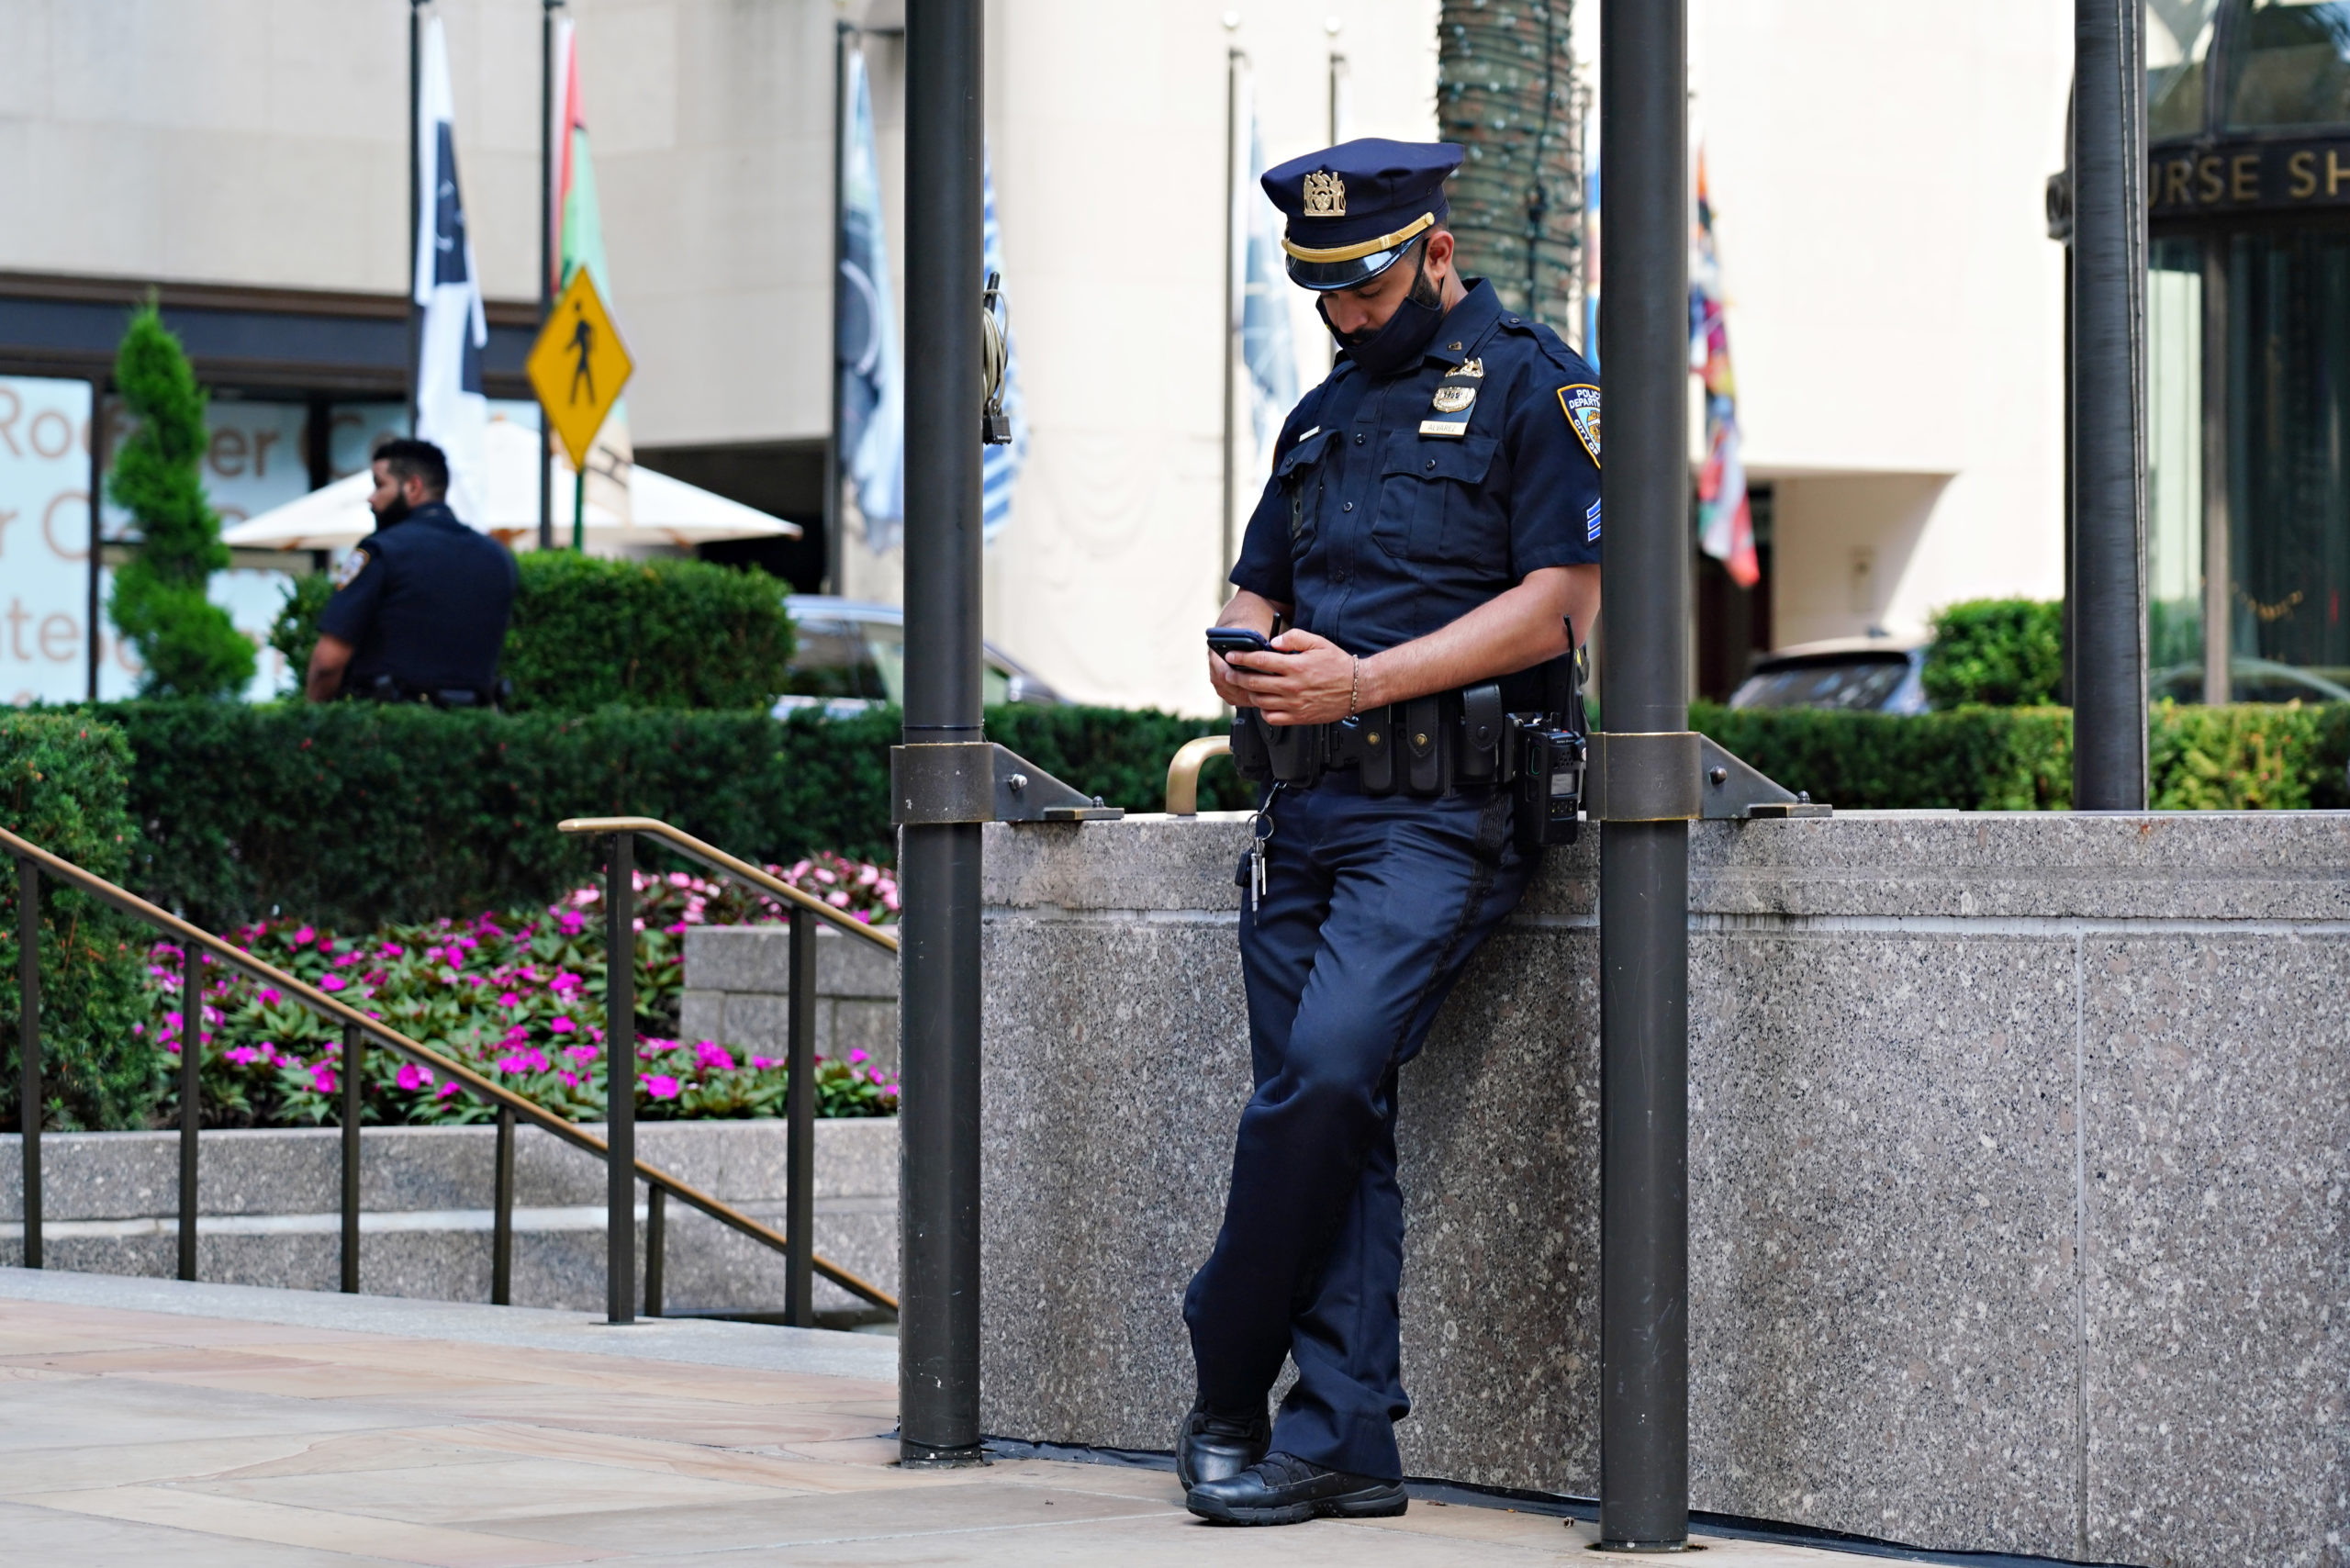 NEW YORK, NEW YORK - AUGUST 01: An NYPD officer wearing a protective mask looks at his phone at Rockefeller Center as the city continues Phase 4 of re-opening following restrictions imposed to slow the spread of coronavirus on August 1, 2020 in New York City. The fourth phase allows outdoor arts and entertainment, sporting events without fans and media production. (Cindy Ord/Getty Images)